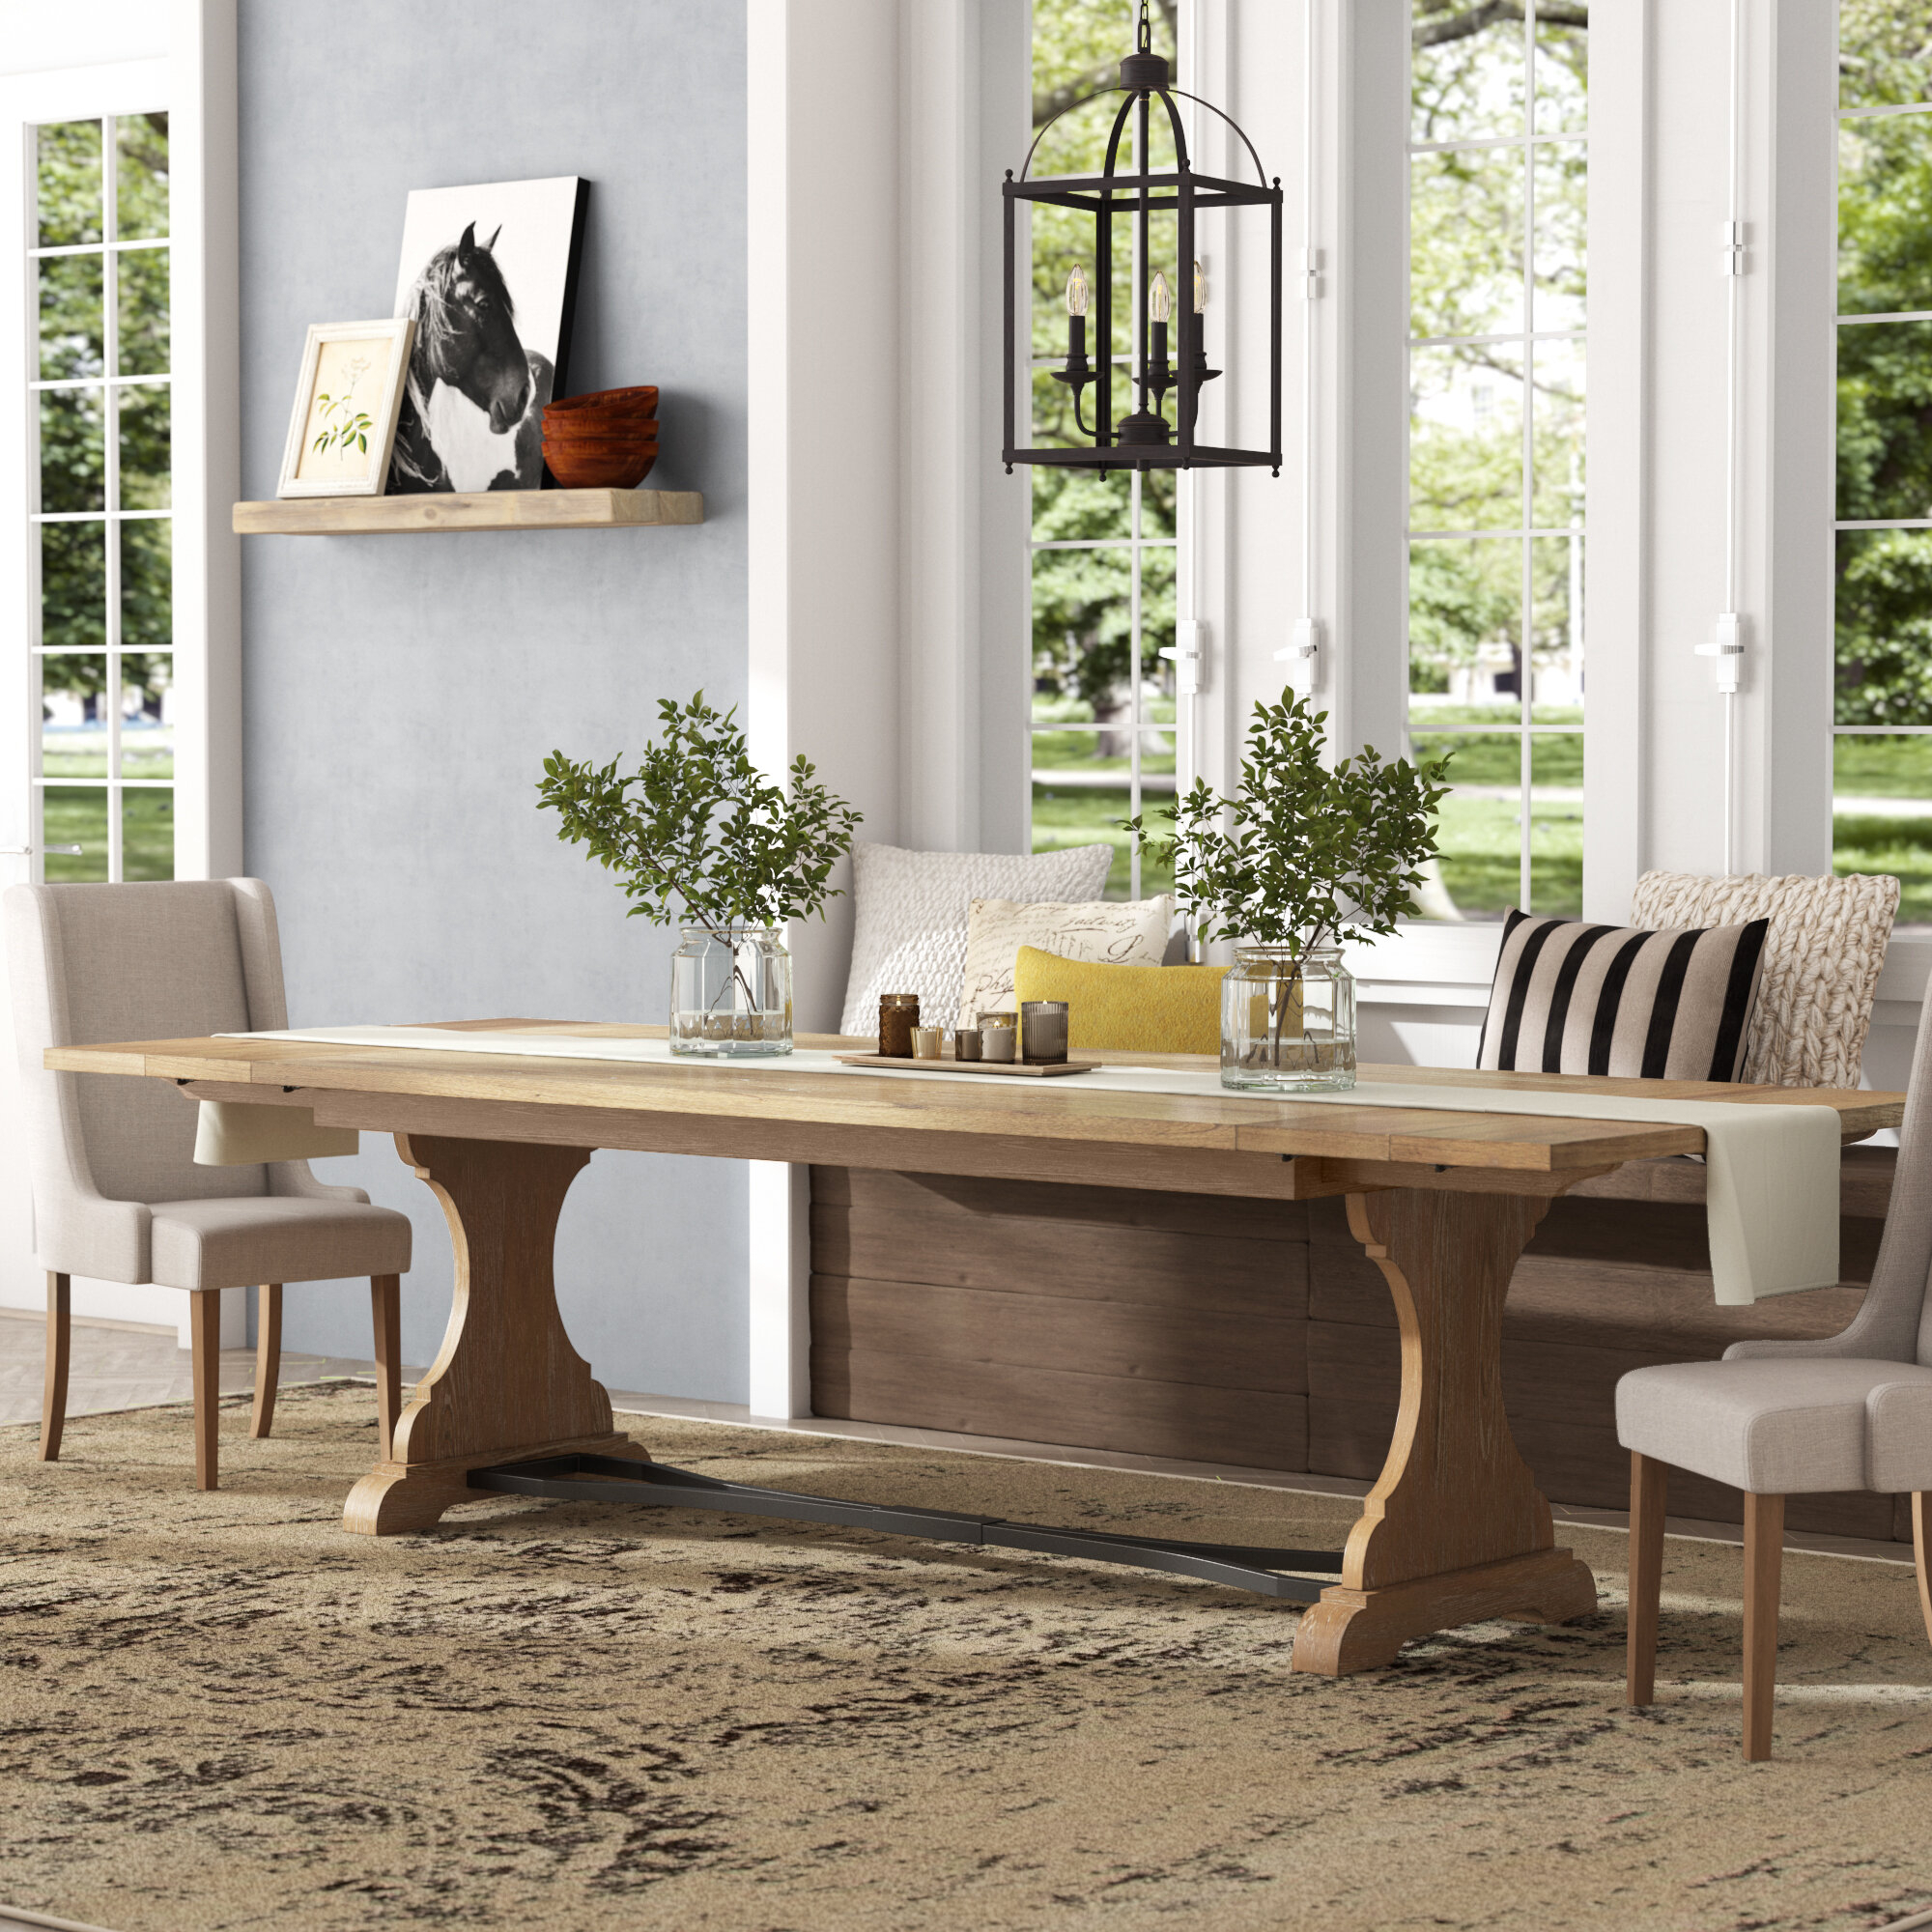 Saguenay Trestle Extendable Dining Table Inside Most Recently Released Mateo Extending Dining Tables (View 19 of 25)